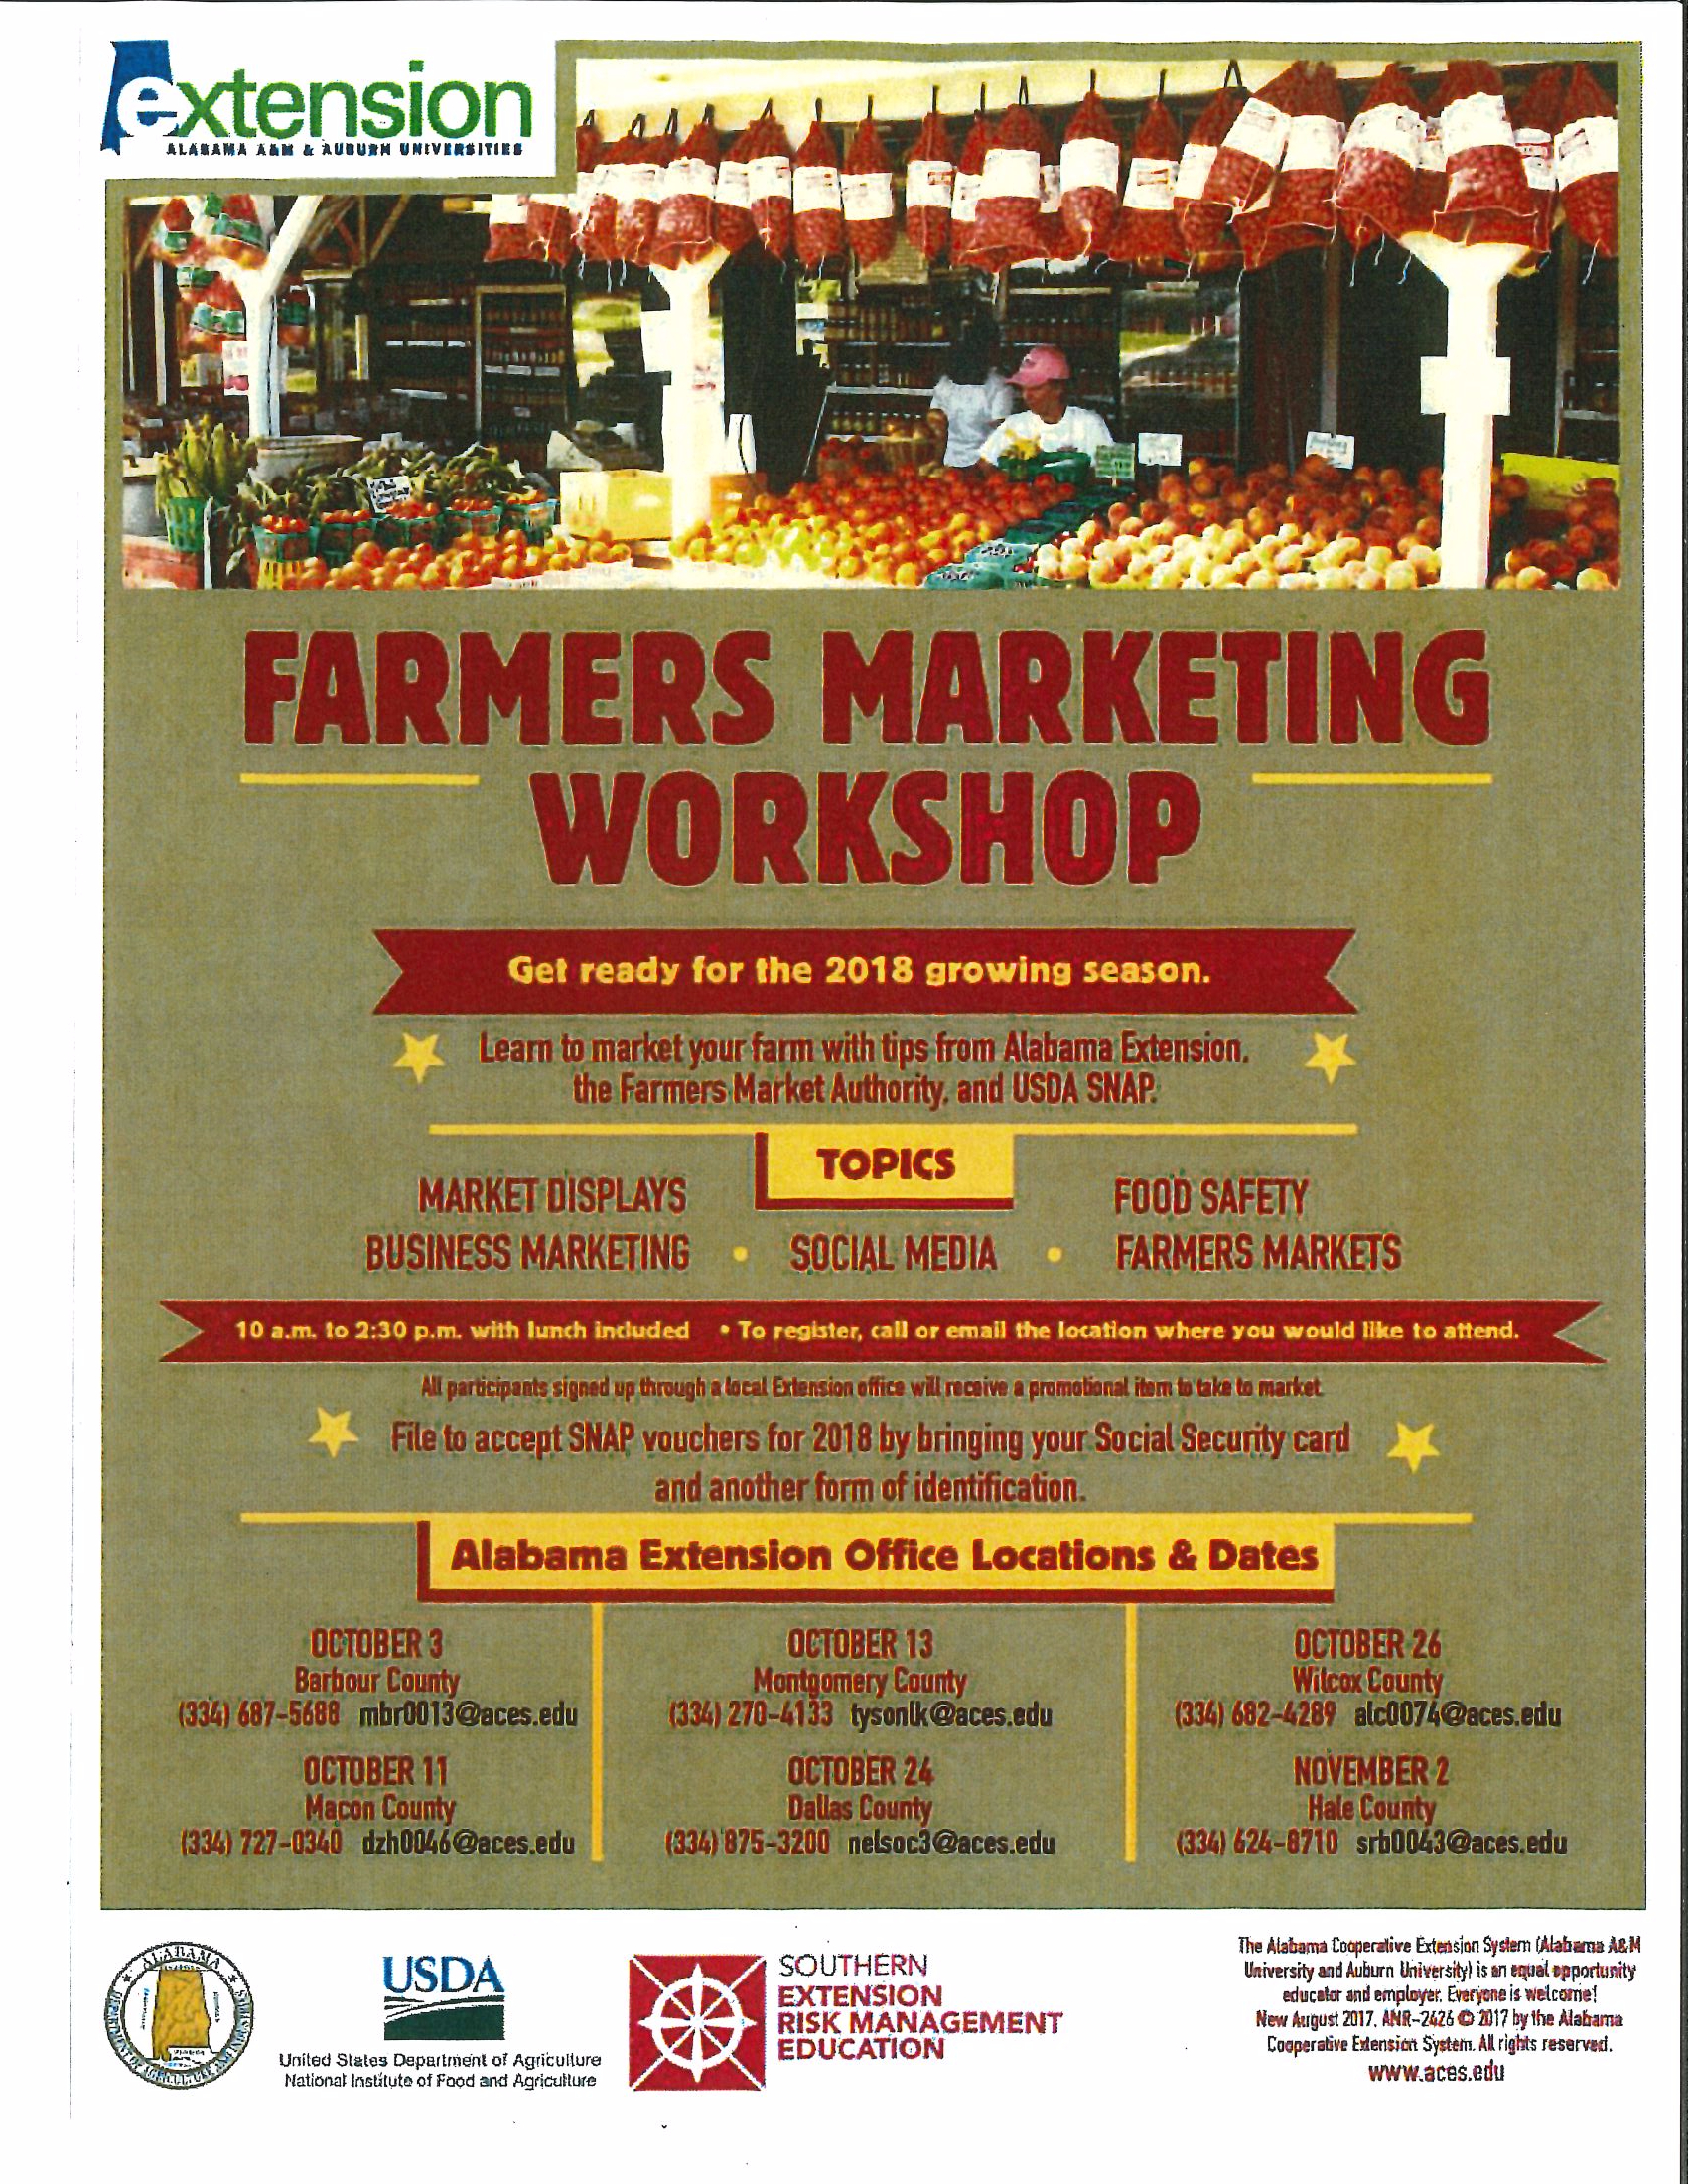 Famers Marketing Workshop